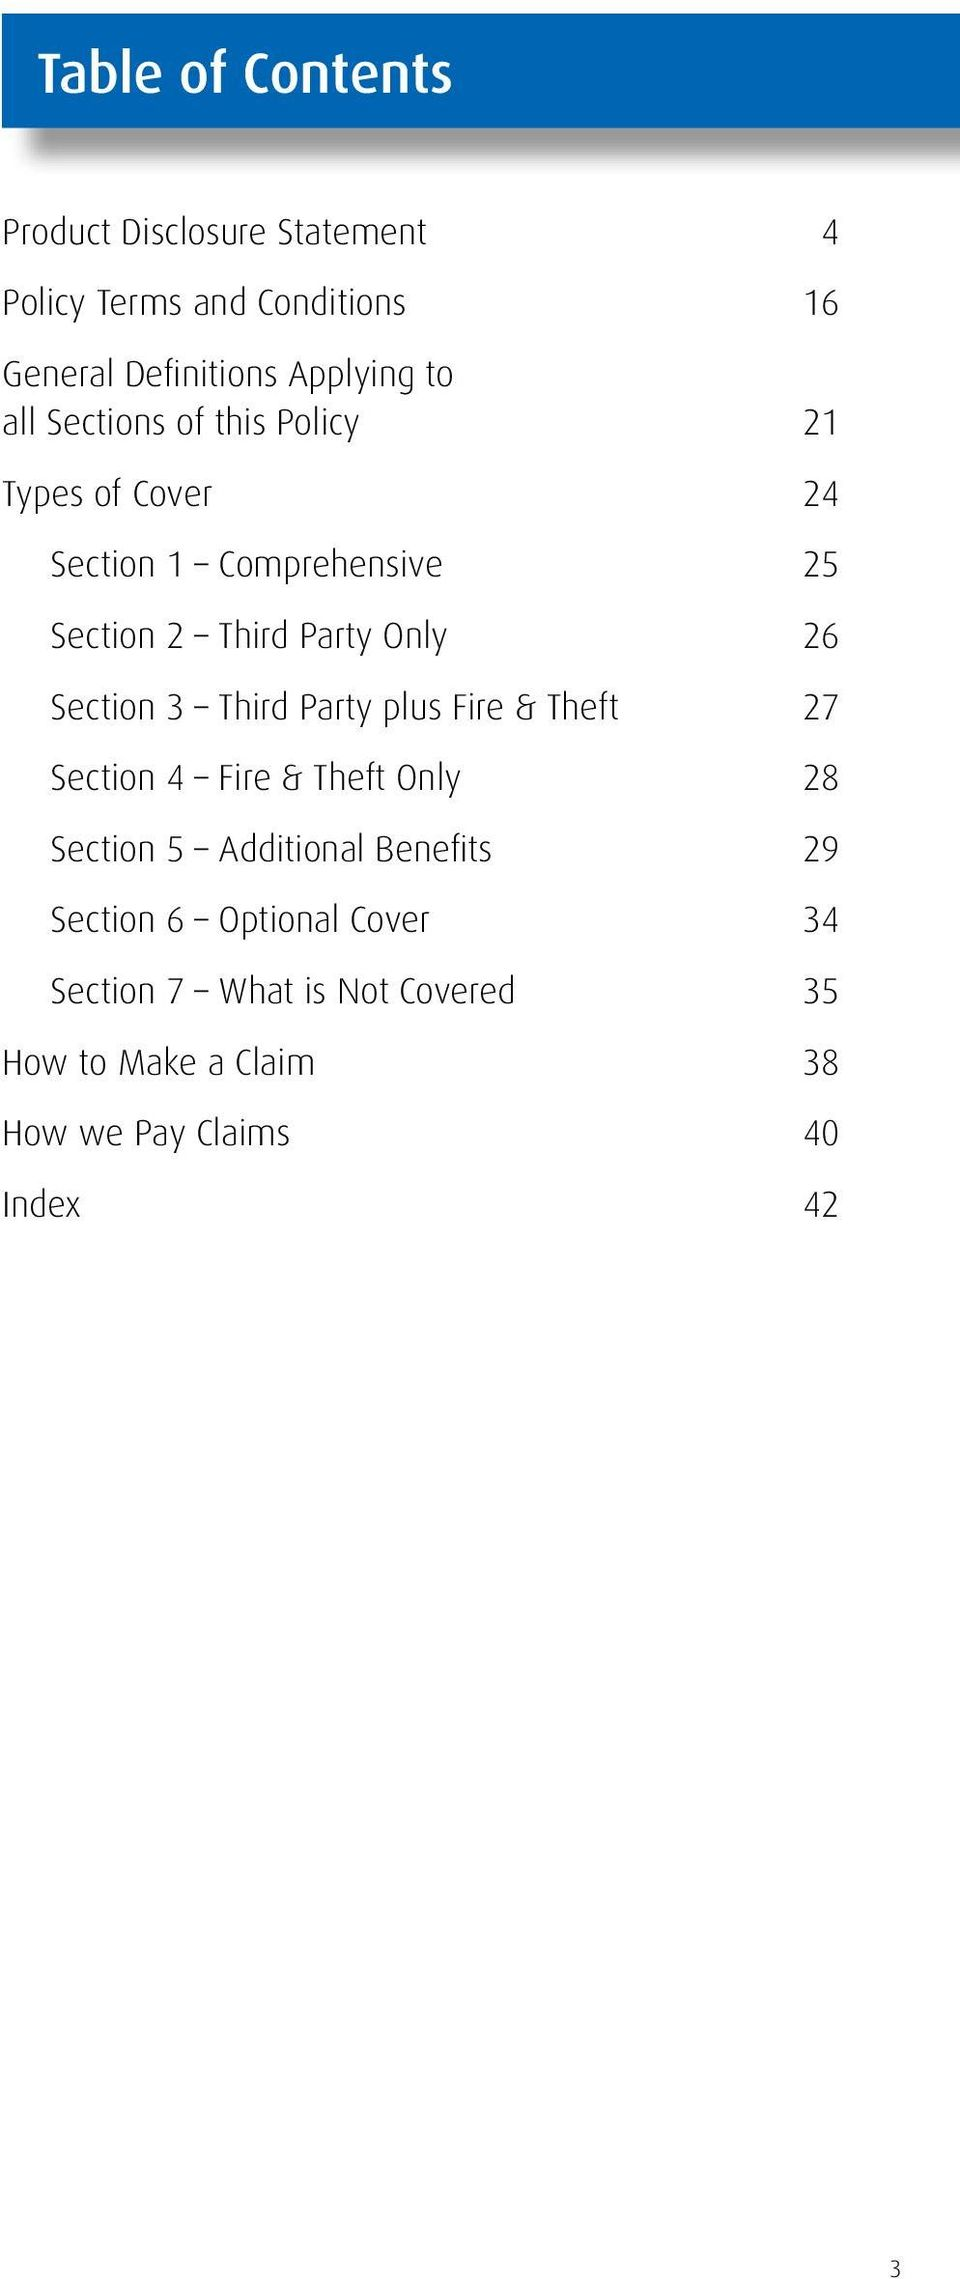 Section 3 Third Party plus Fire & Theft 27 Section 4 Fire & Theft Only 28 Section 5 Additional Benefits 29